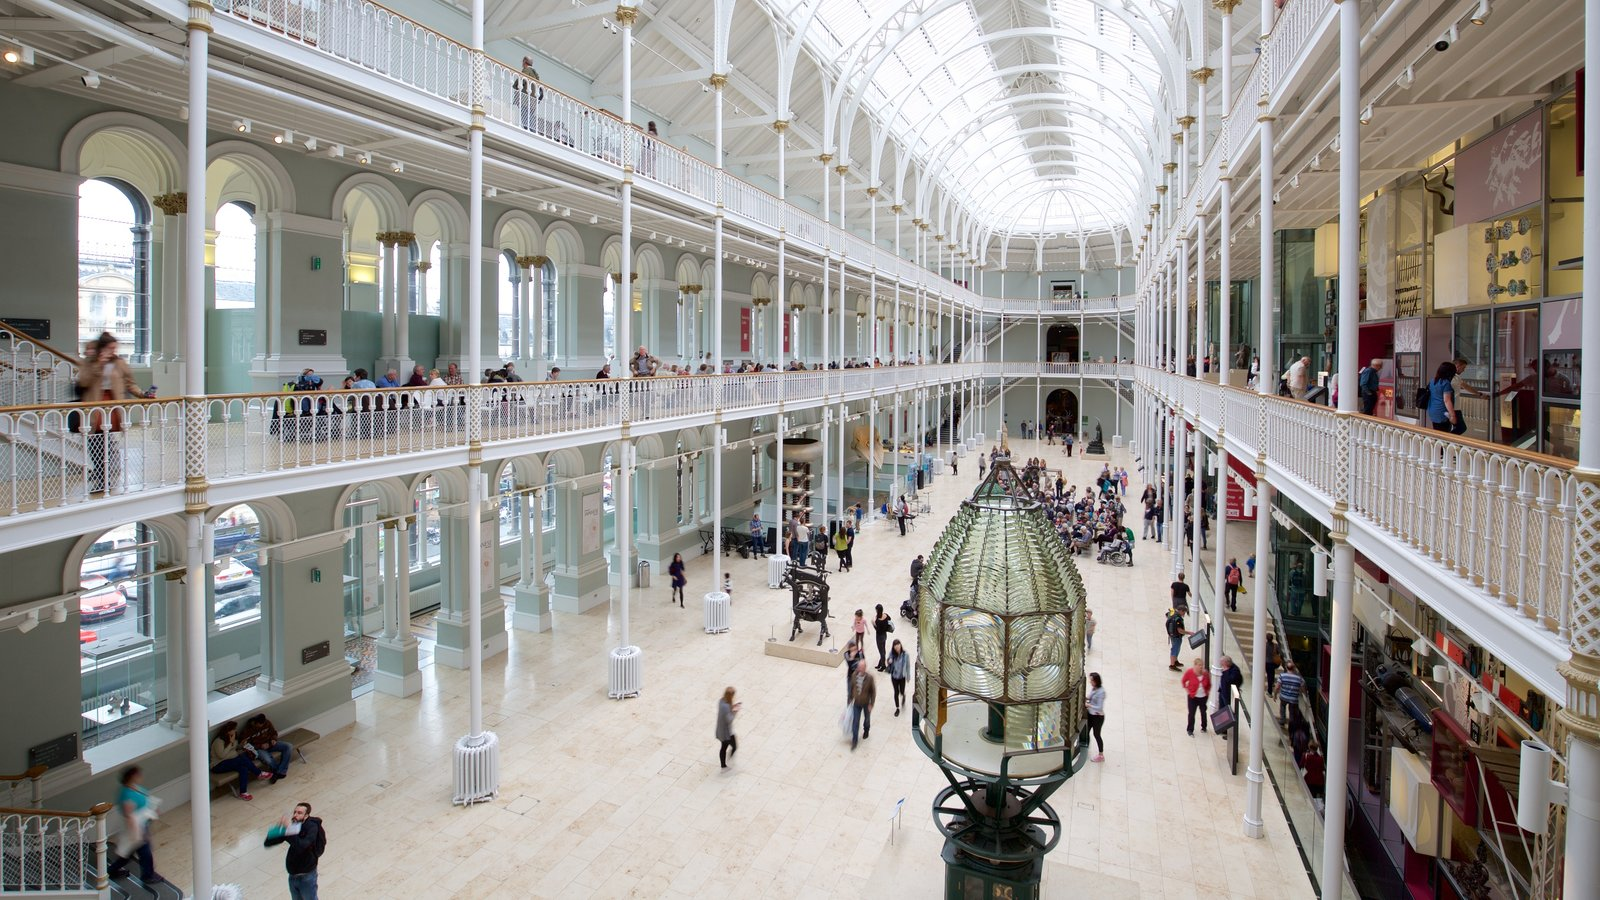 National Museum of Scotland showing interior views